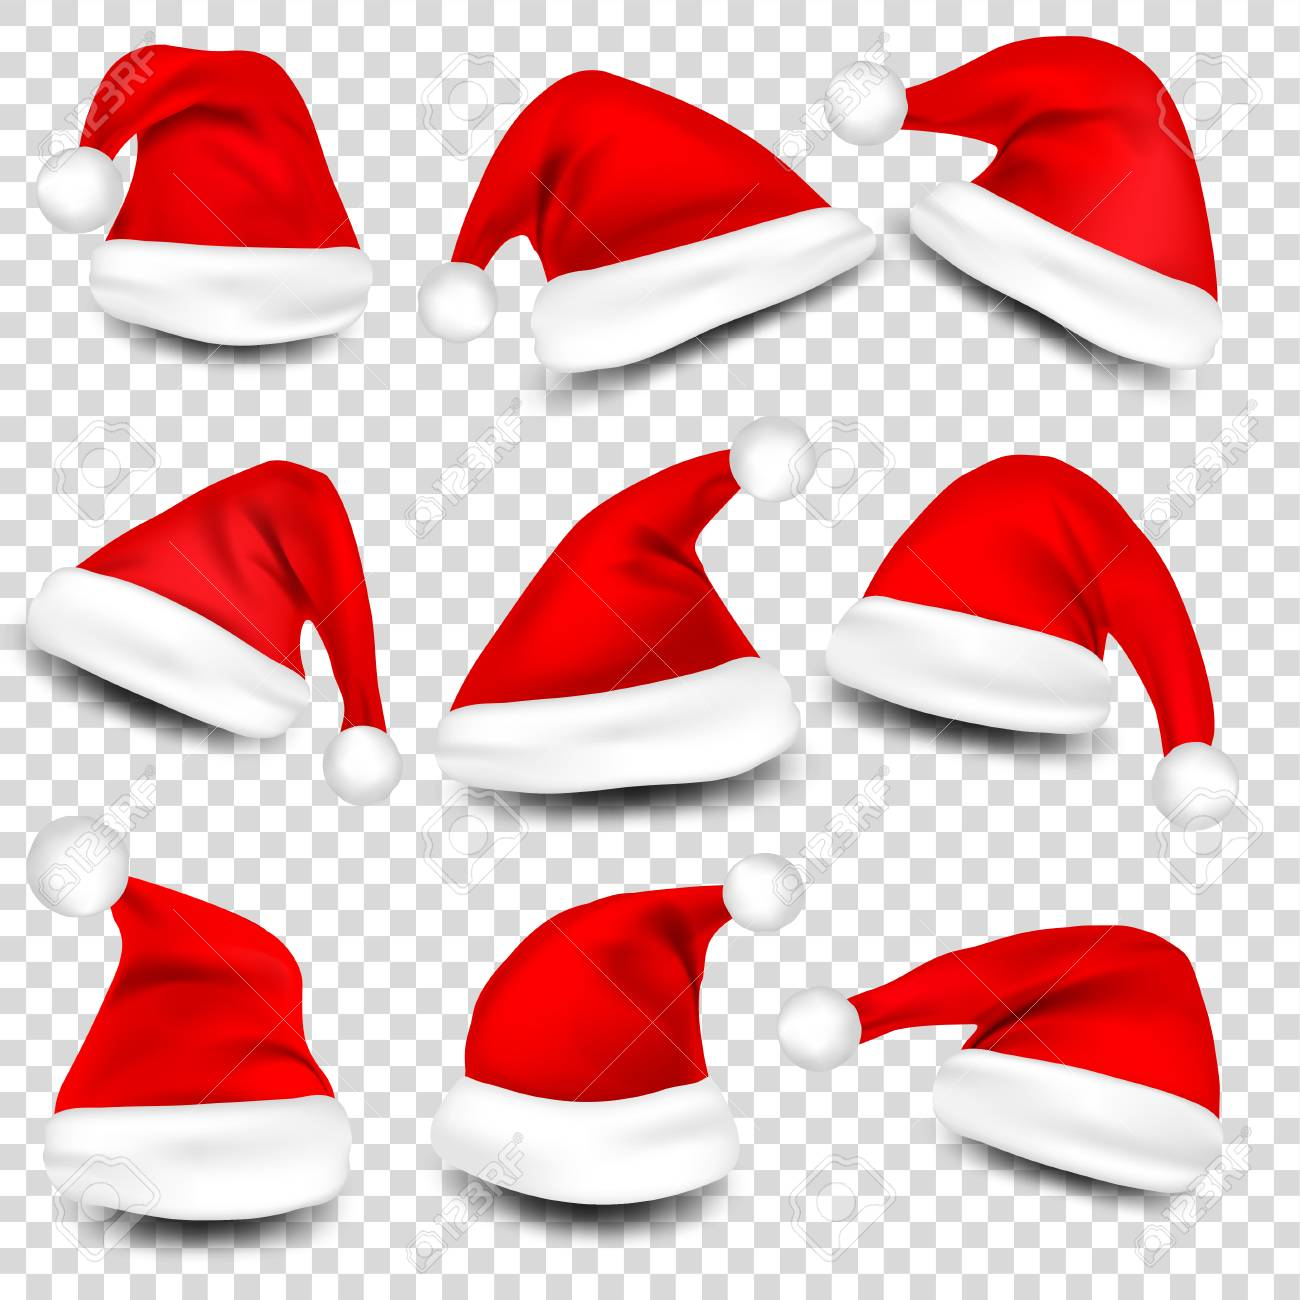 Christmas Santa Hats With Shadow Set. New Year Red Hat Isolated on Transparent Background. Vector illustration. - 89921131